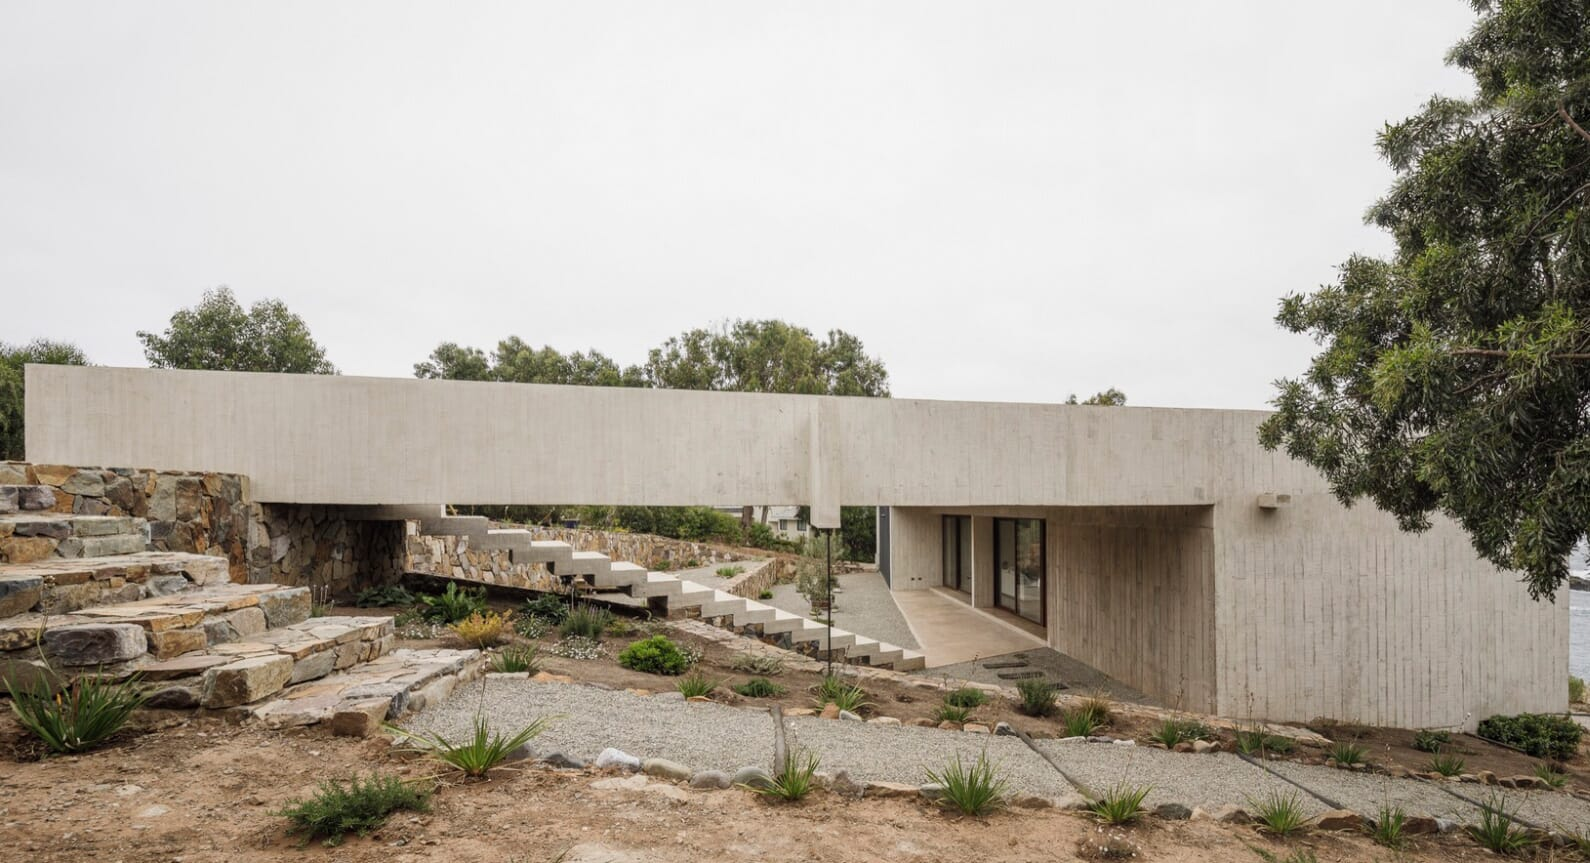 Casa Cipolla Is A Concrete Shelter Above Chile's Spectacular Coastline